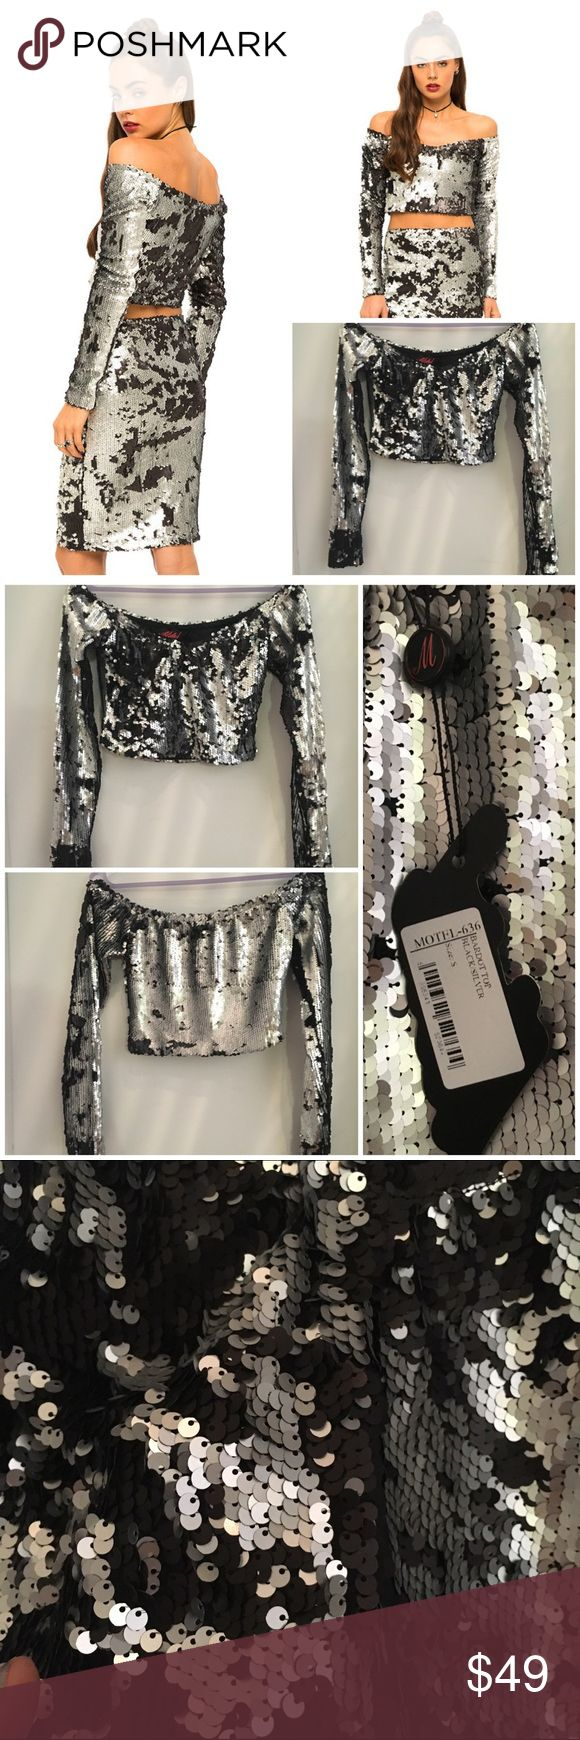 "Motel rocks sequin long sleeve Bardot top NWT sml Motel rocks sequin long sleeve Bardot top NWT SML. Hem 13.5"". U/a 15.5"". Sleeve 22"". Silver sequin on top black sequin on other side. Amazing top. ❌🅿🅿❌trades❌holds pls use offer button for price negotiations ASOS Tops"